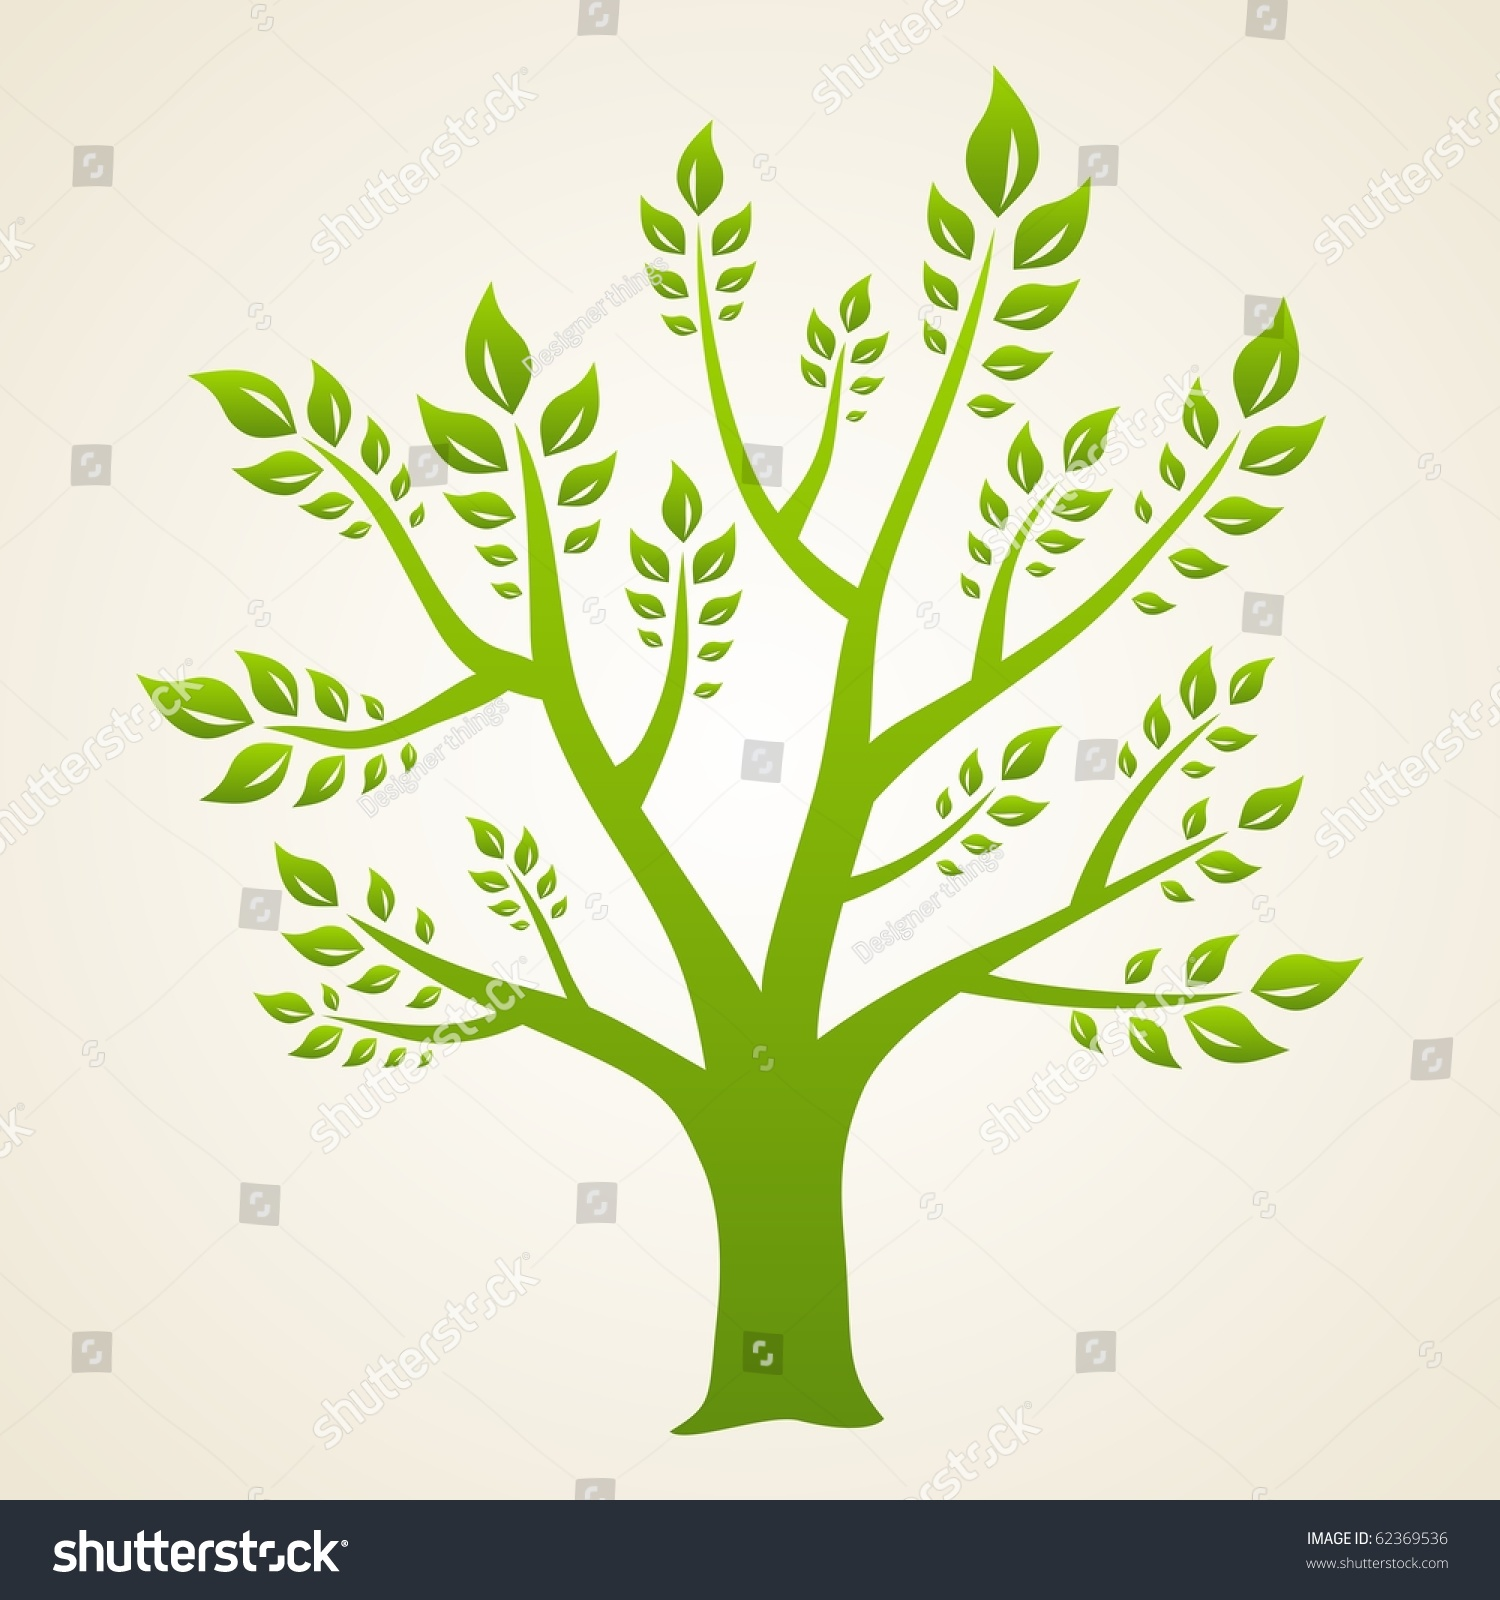 Abstract Green Tree Symbol Of Eco And Nature Stock